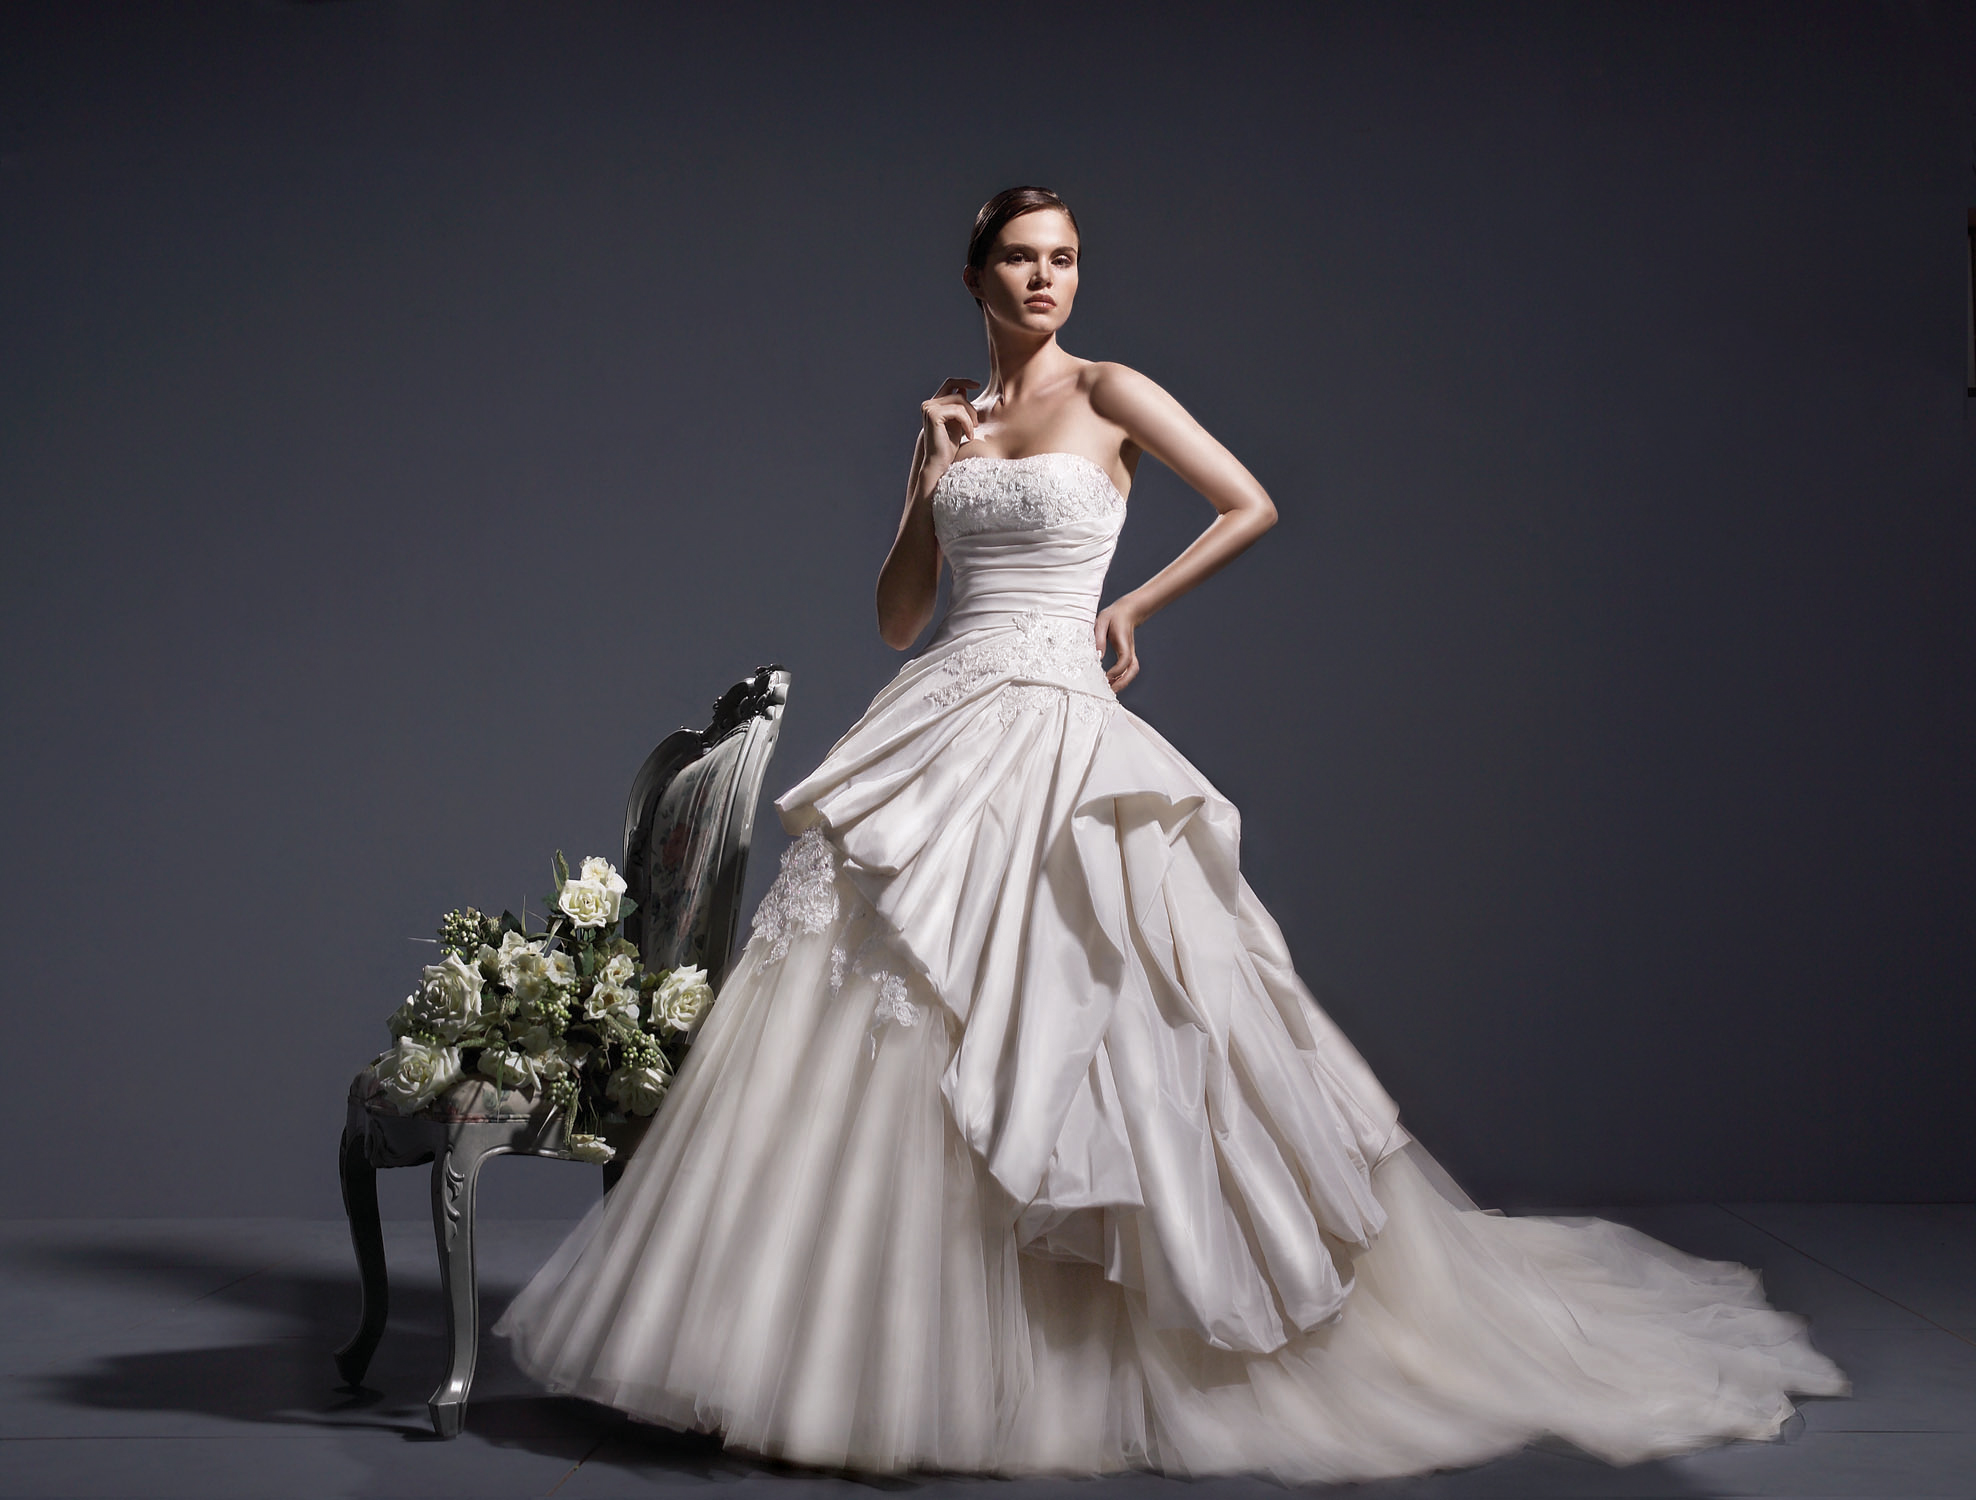 40 Best Wedding Bride Images The Wow Style